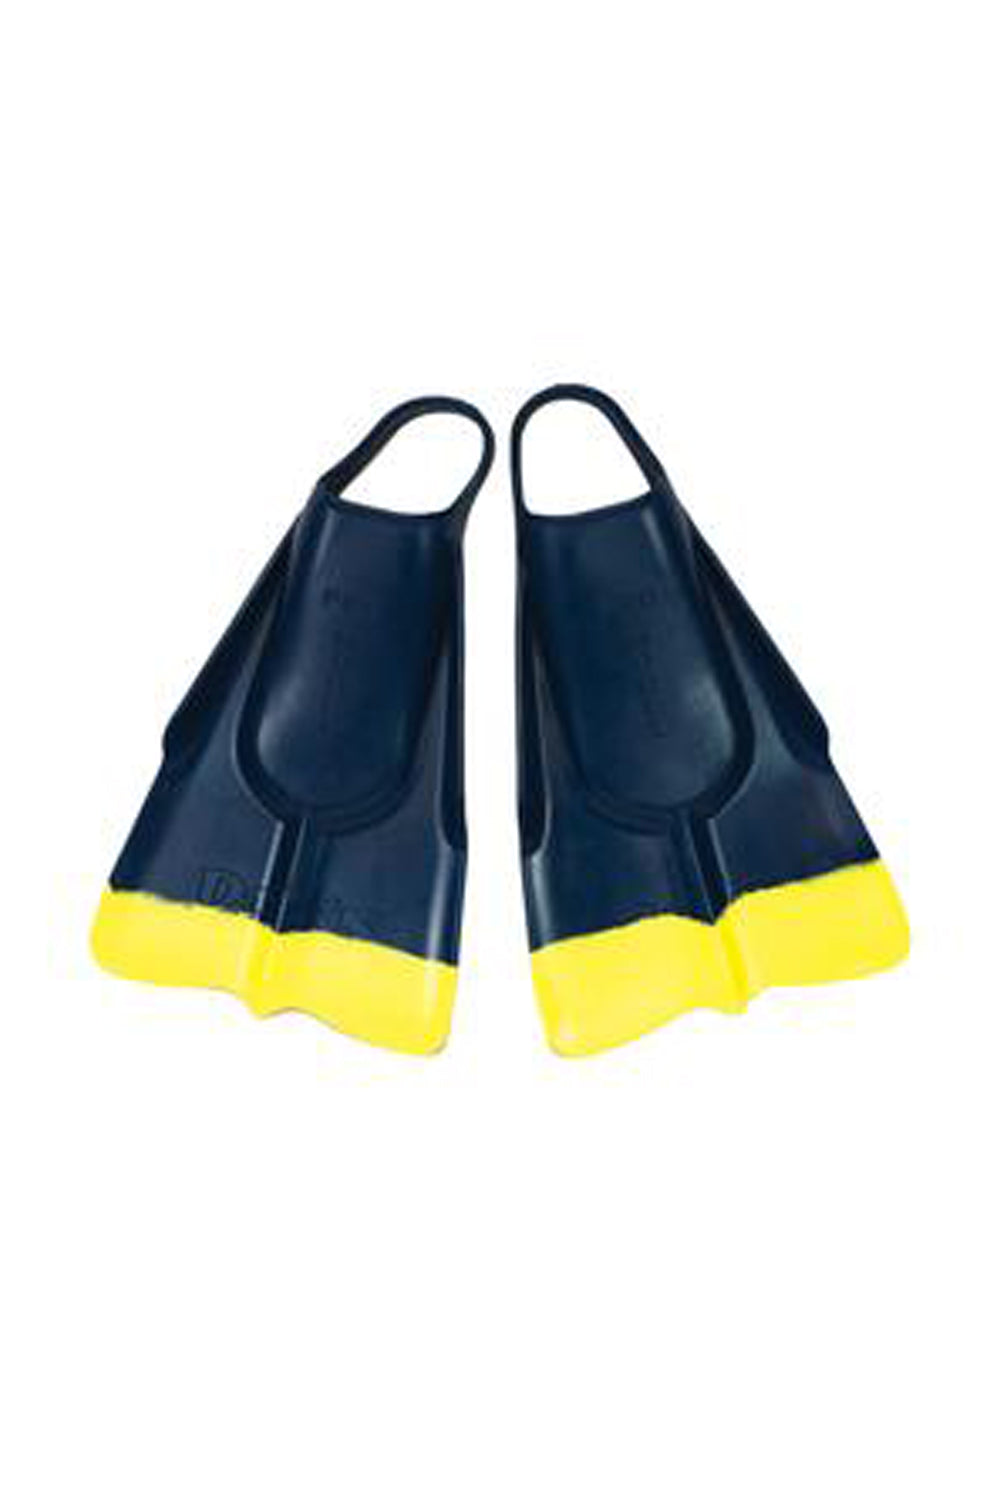 Da Fin Swimfins Flippers - Navy / Yellow